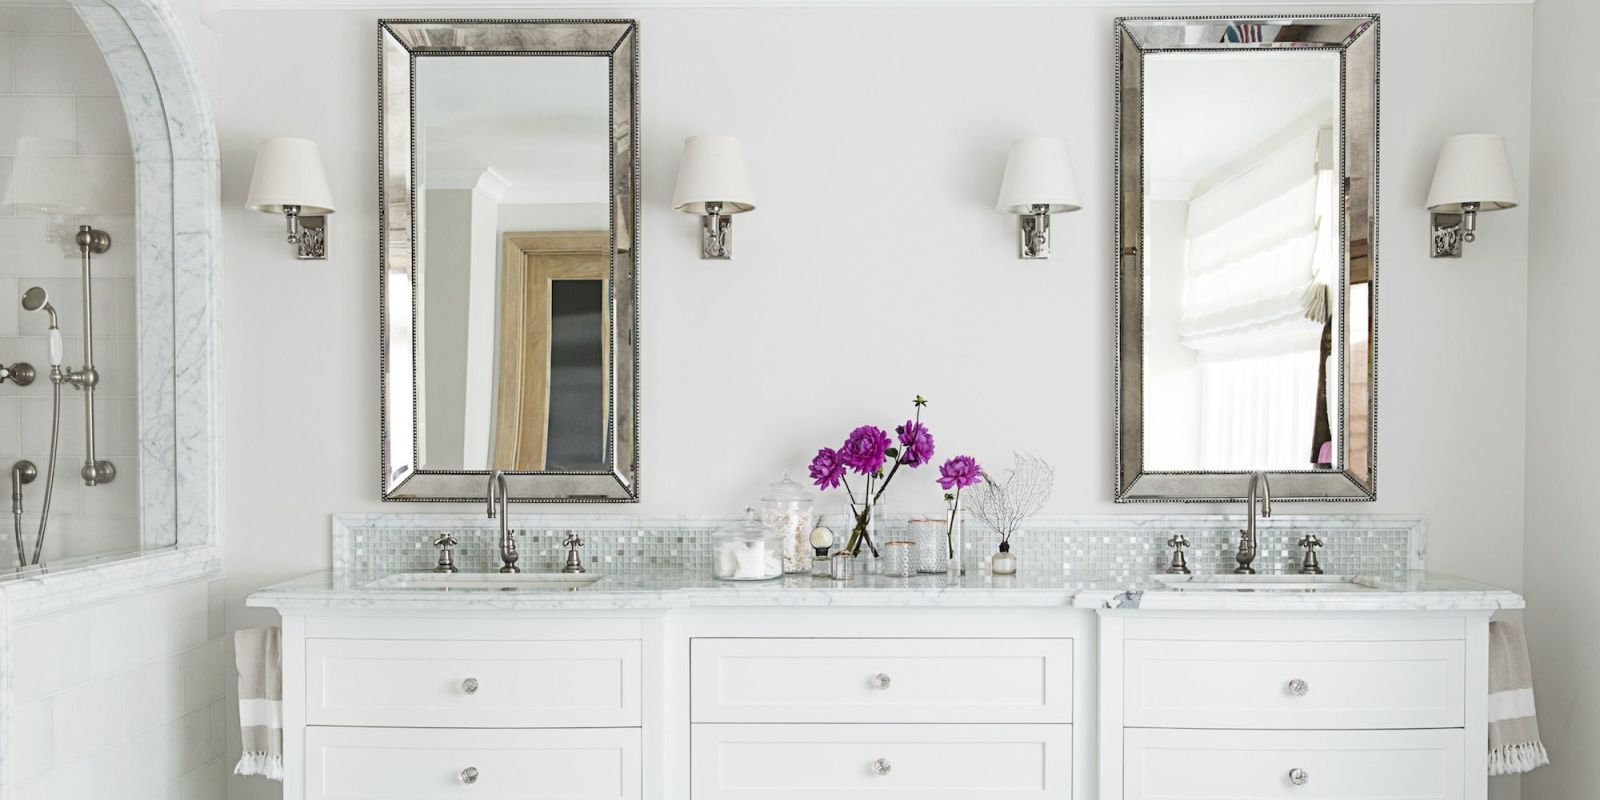 Superieur A Few Key Design Choices Can Update The Vibe Of Your Bathroom In A Snap.  Want A Clean, Modern Look? All Over White Does The Trick. Use Colorful  Accents Like ...